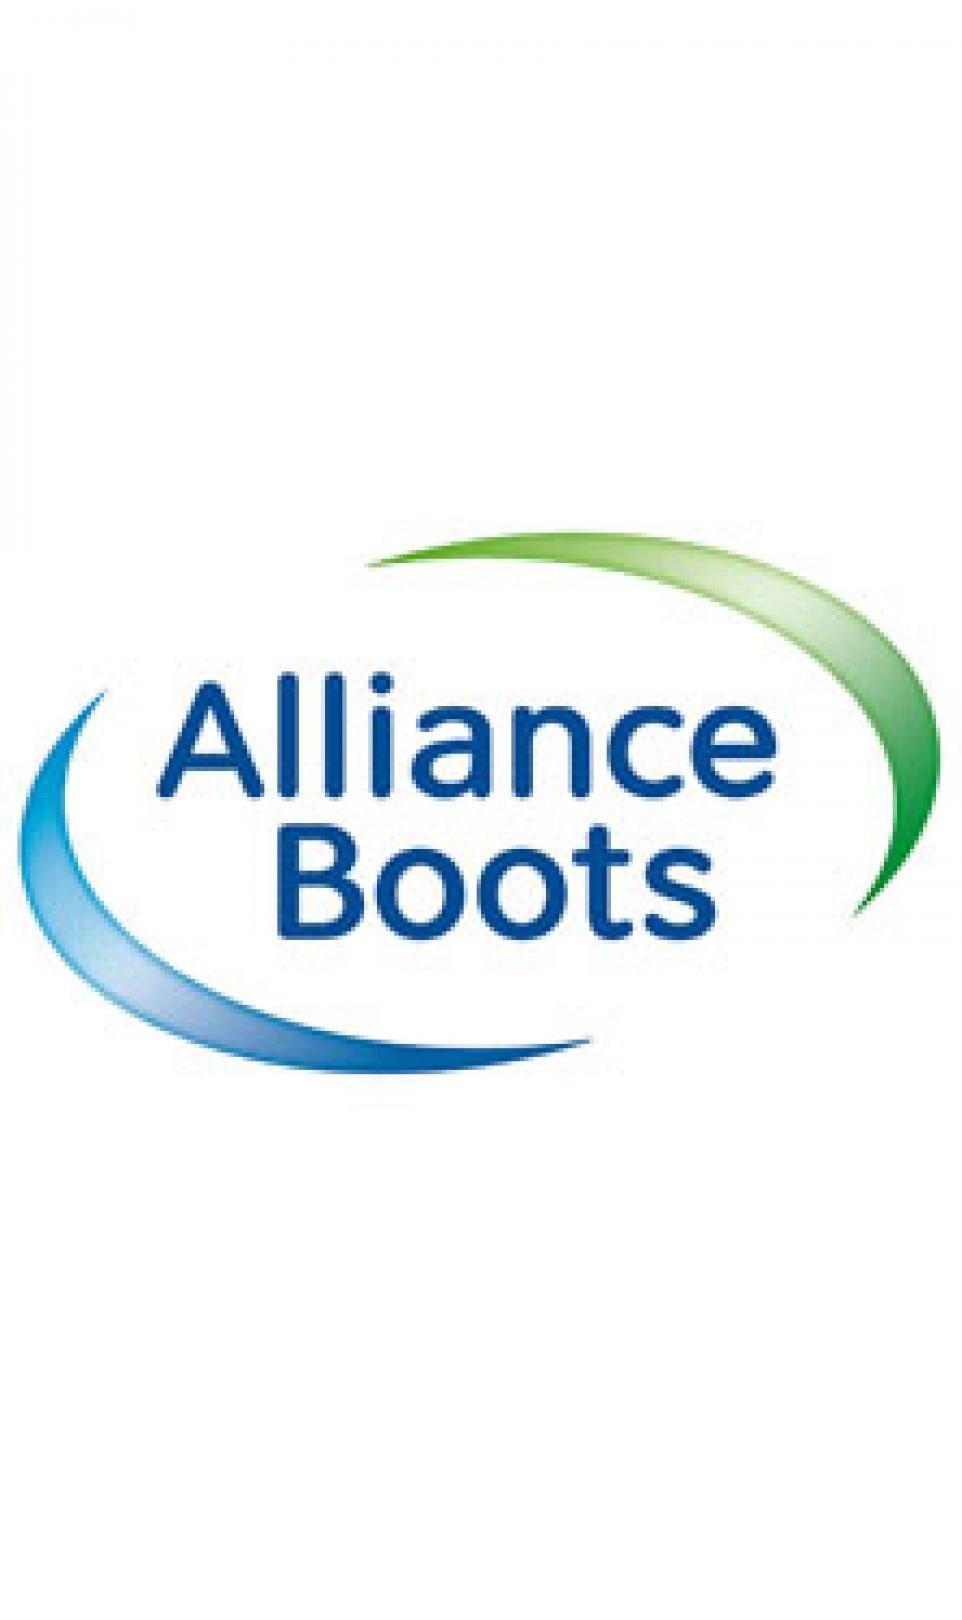 The blue and green Alliance Boots logo, pictured on a white background